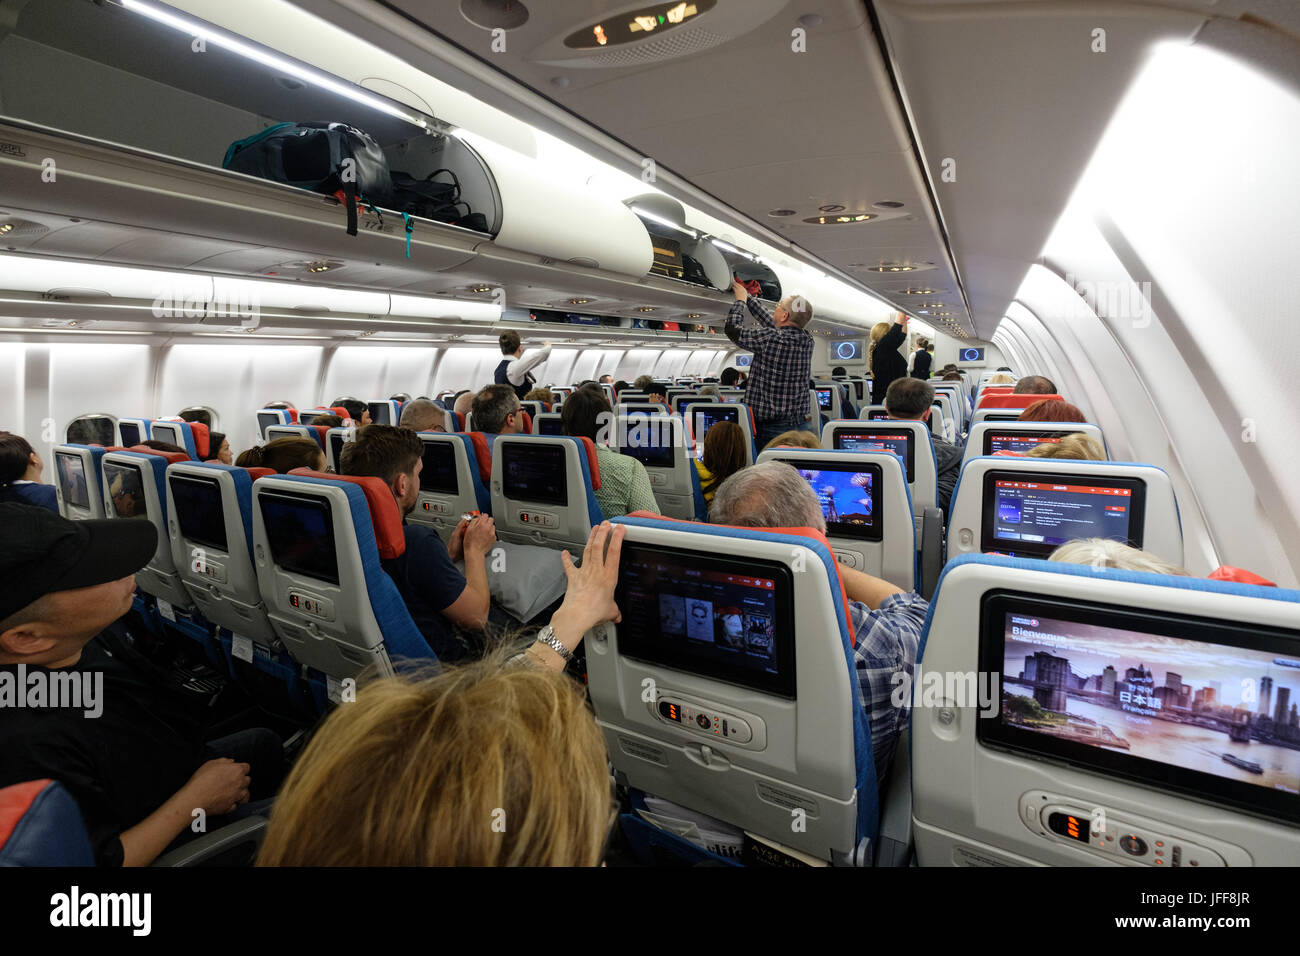 Passenger using an airplane's entertainment system - Stock Image